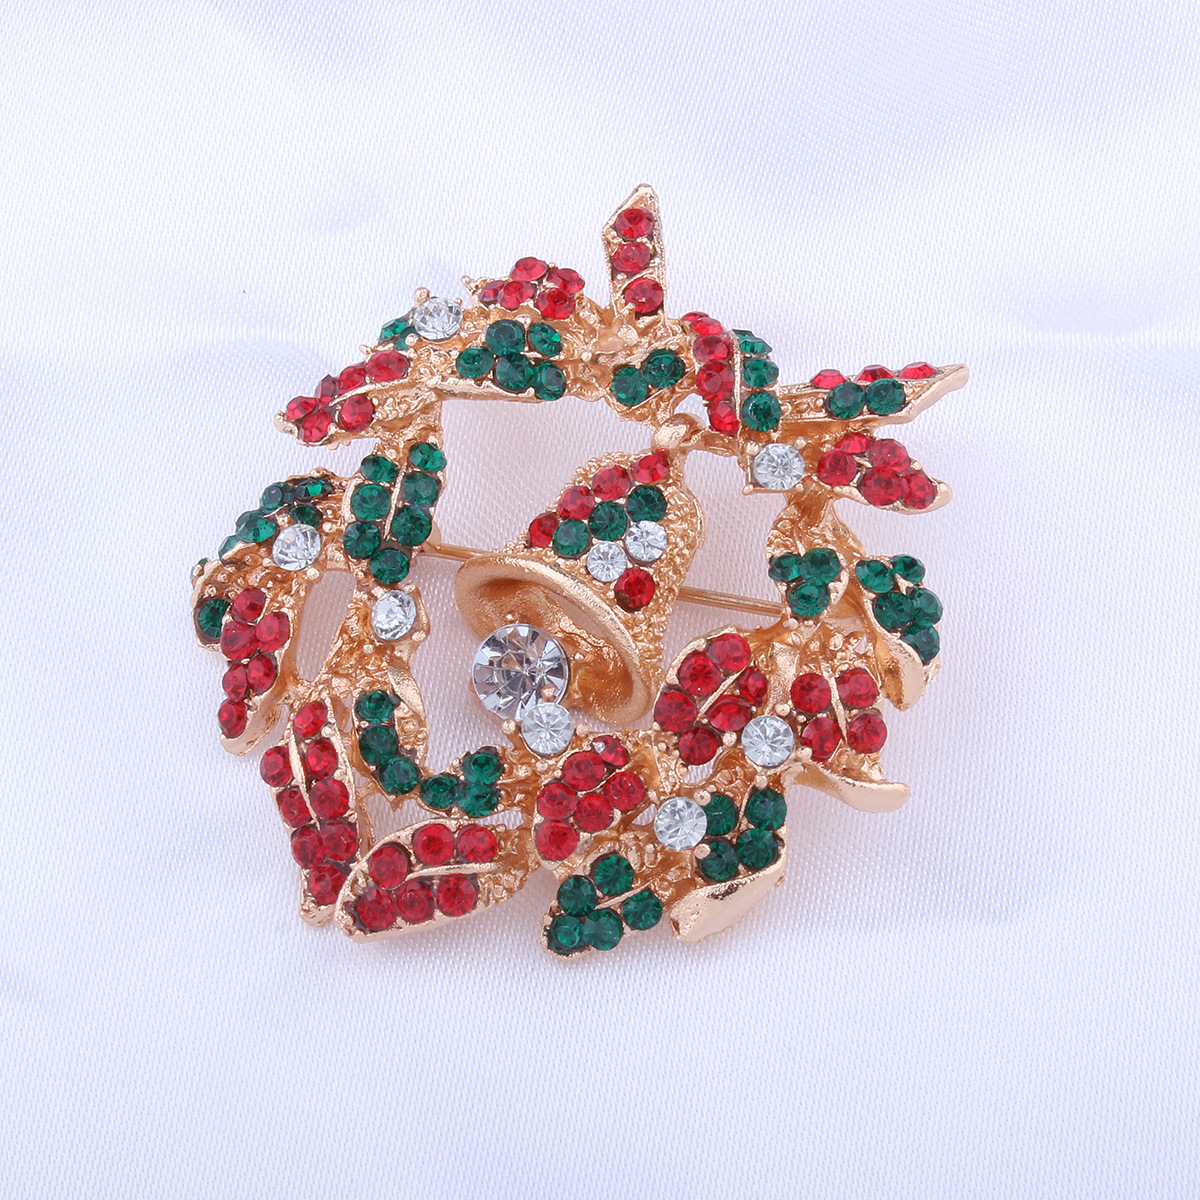 Occident and the United States alloy Diamond brooch (Christmas wreaths)NHNMD3847-Christmas wreaths